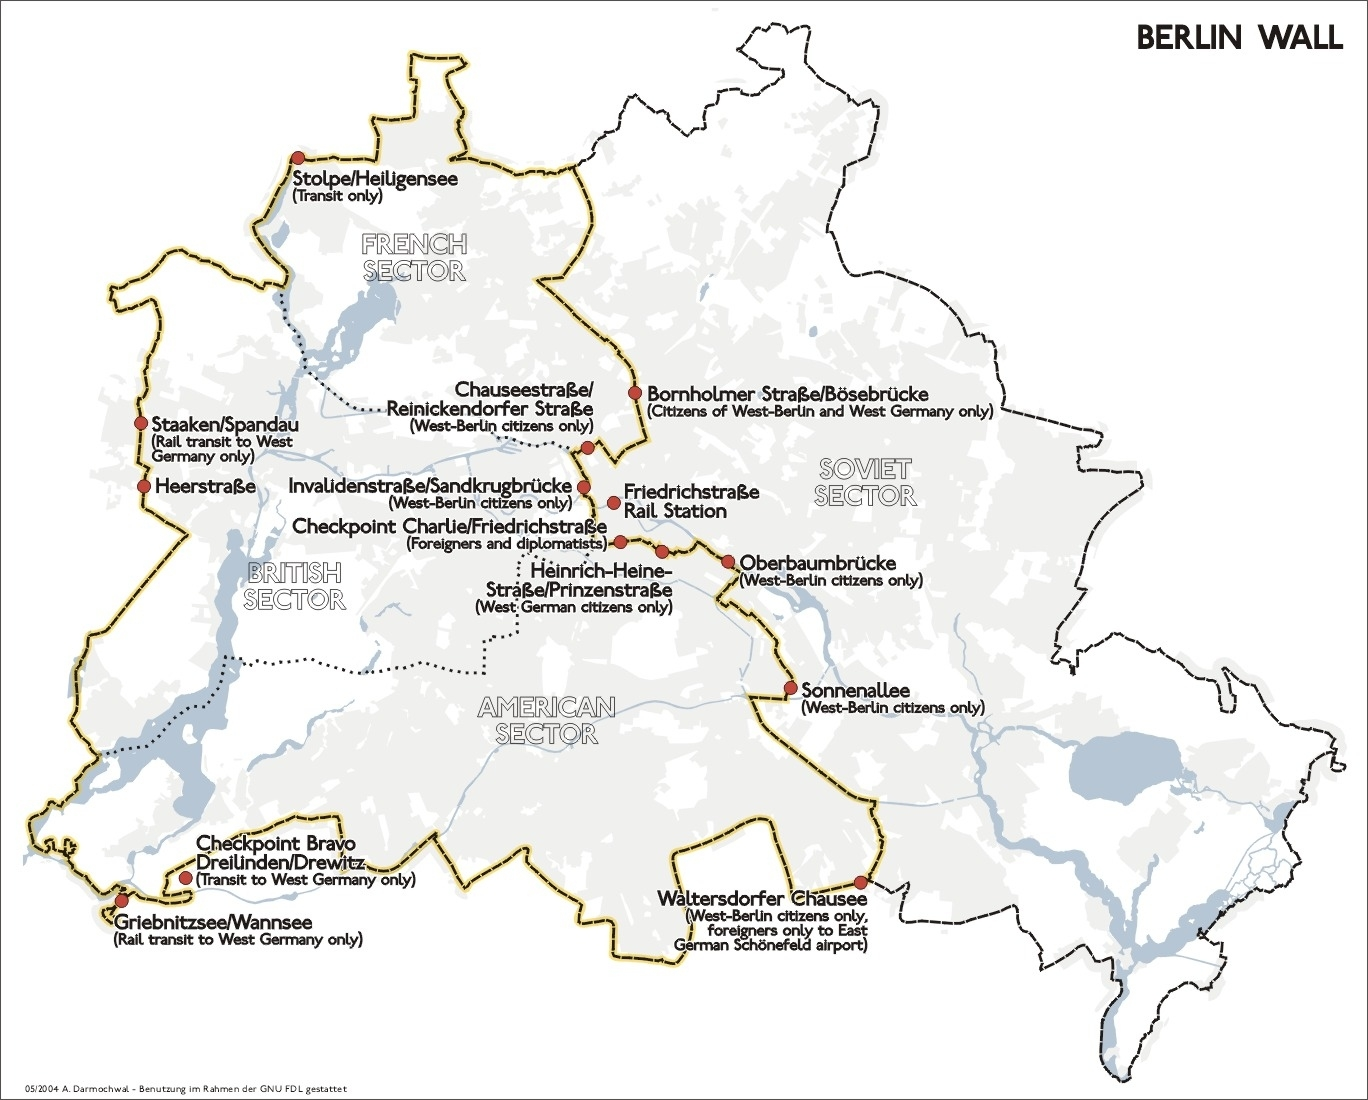 Map Of Berlin Wall Location in Germany Map Before 1989